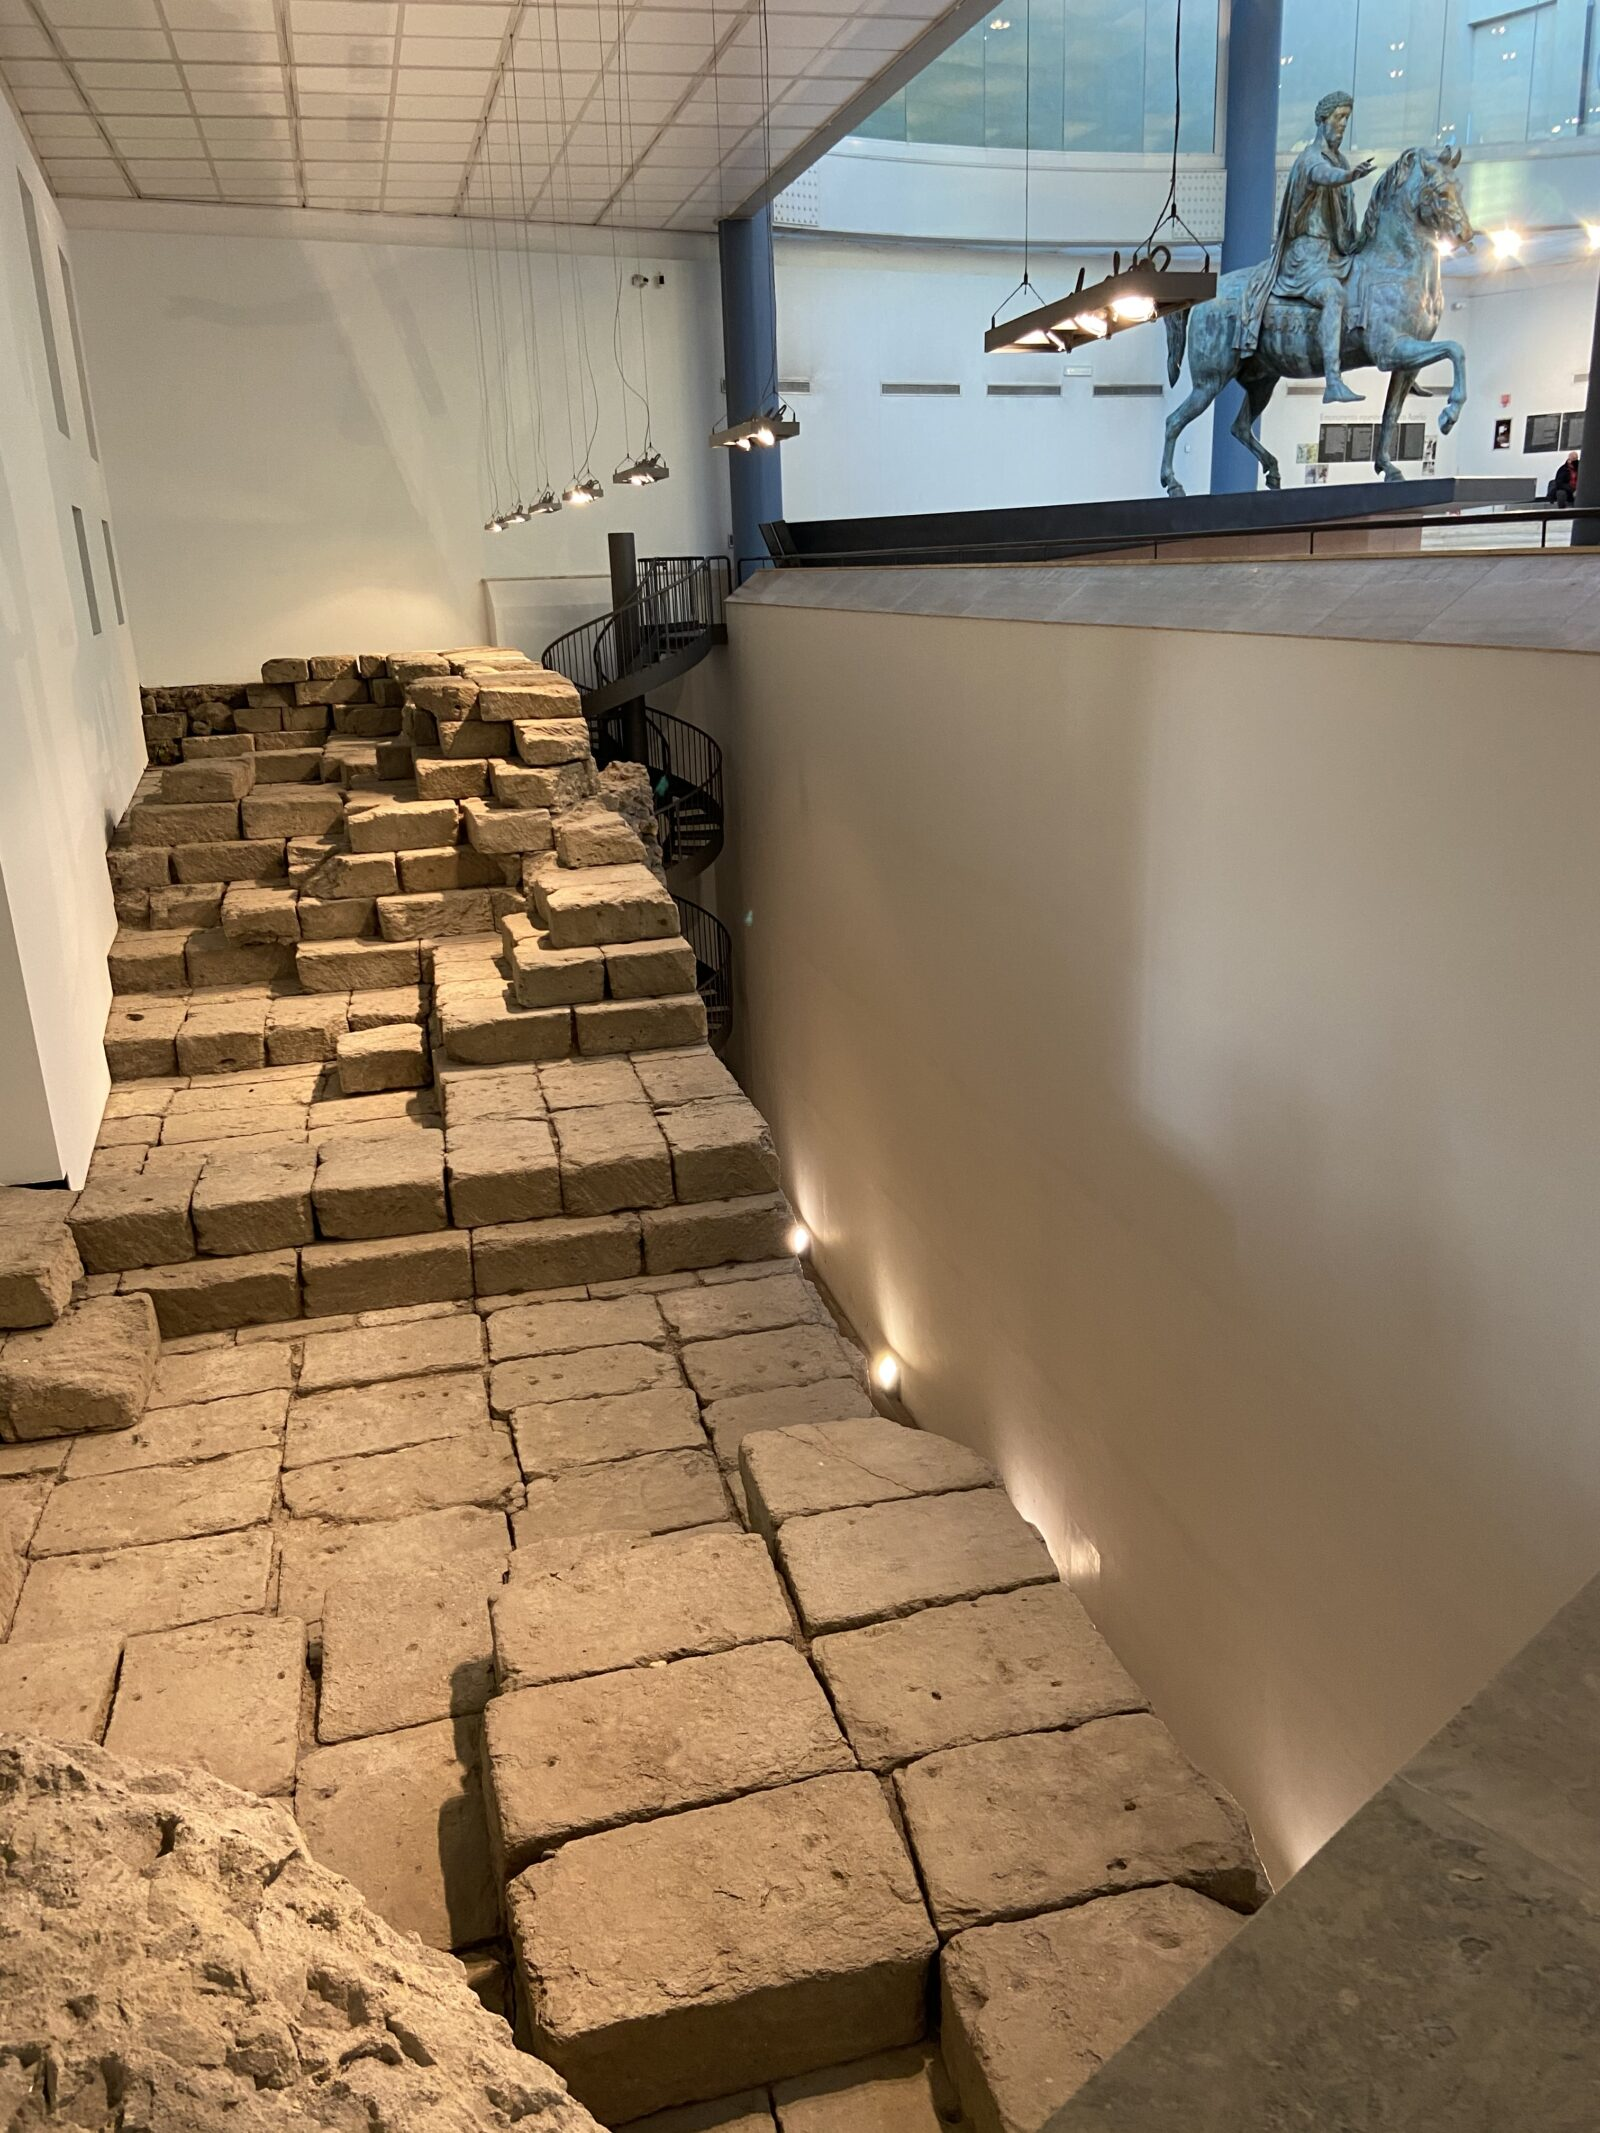 Part of the original floor of the temple that stood here in the 6th century B.C.